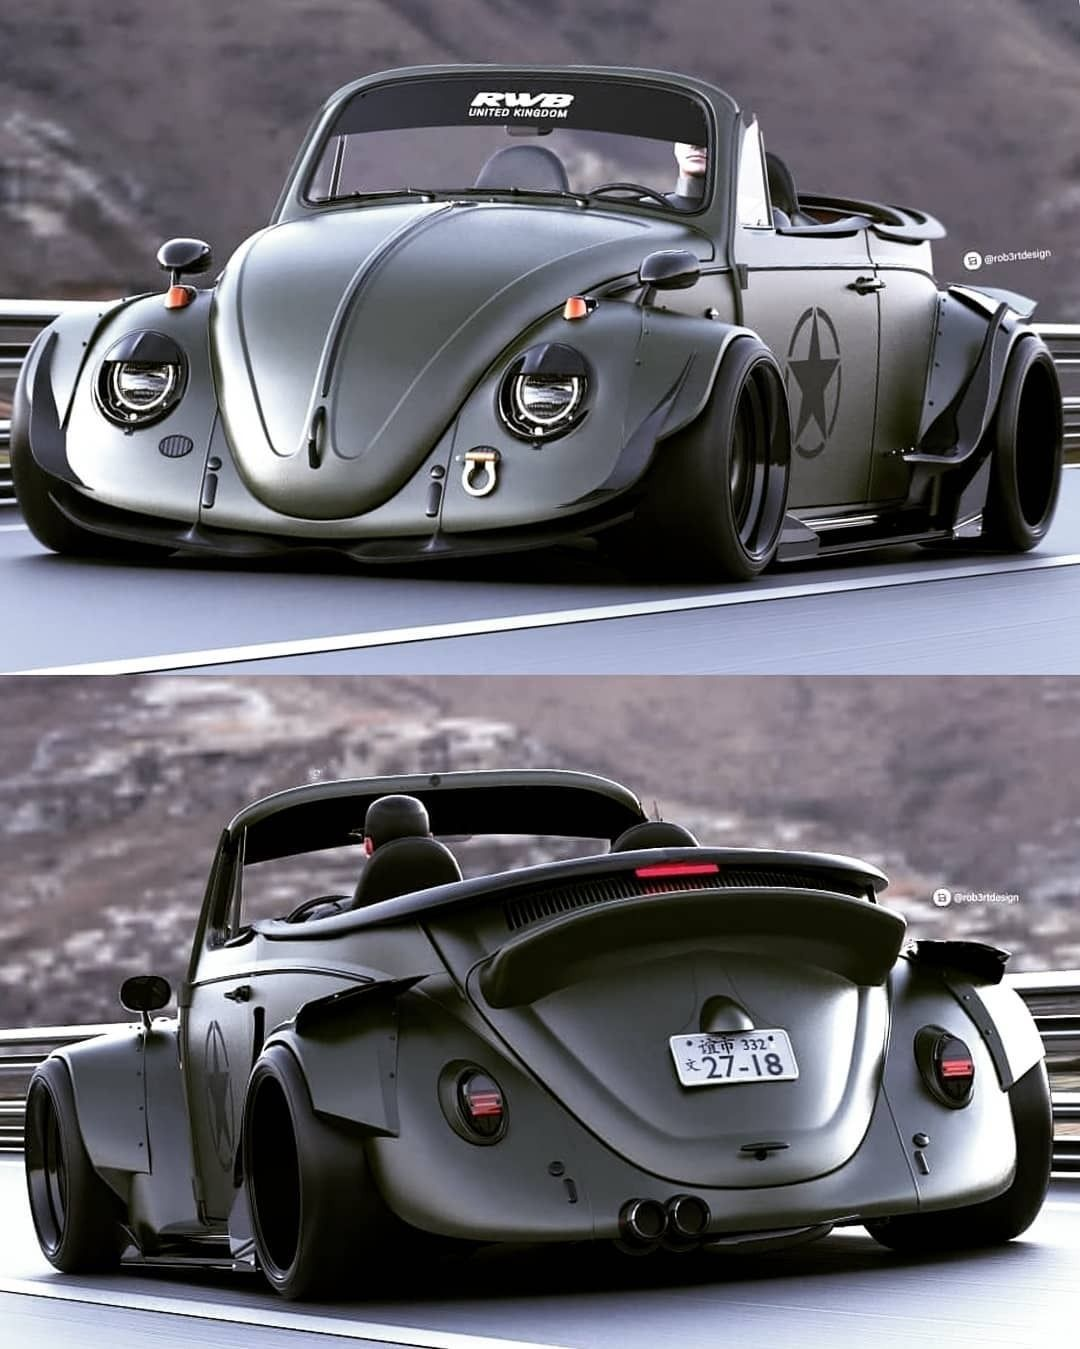 Image Vw Bugs Vw Bugs Vw Camper Vans Buses Volkswagen Bus Vw Camper Volkswagen Beetles Vw Vans Dune Buggies Volkswagen In 2020 Cool Cars Super Cars Classic Sports Cars